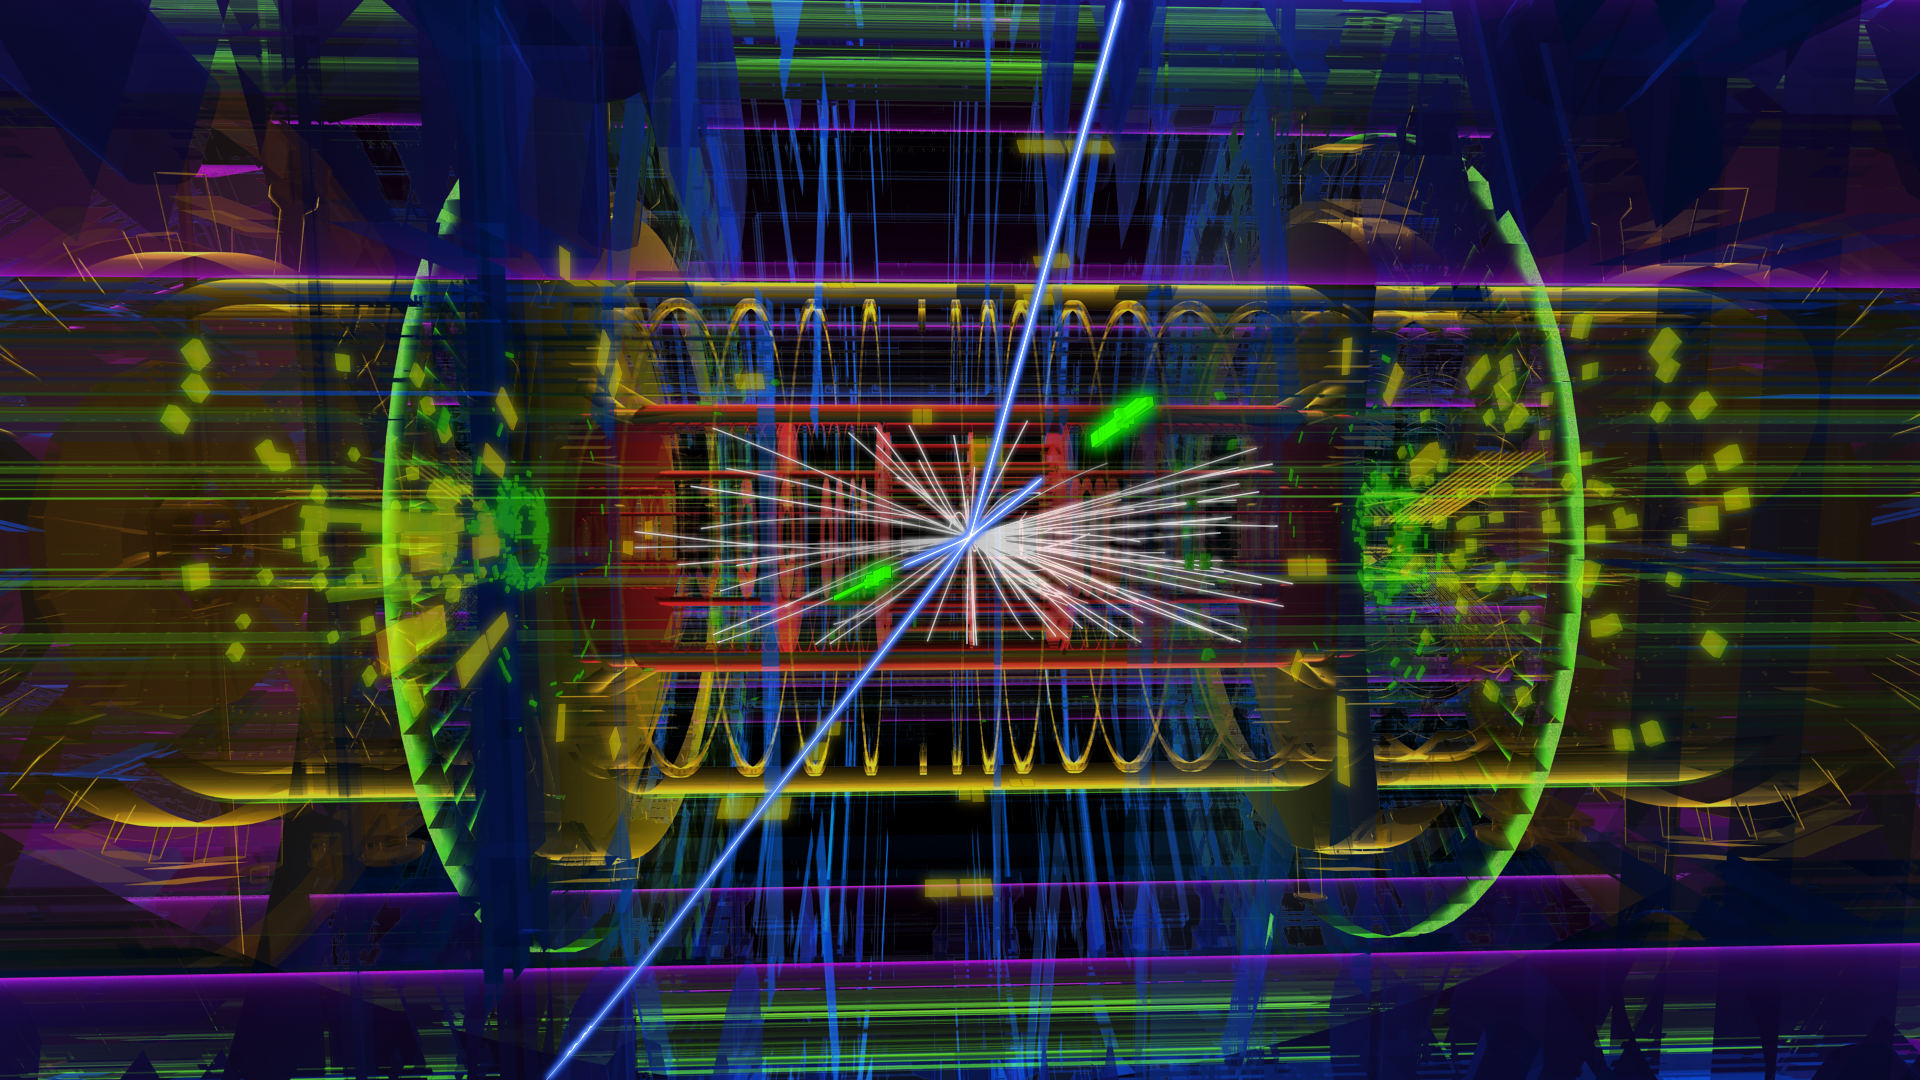 A proton-proton collision in the ATLAS experiment.  The lines and boxes illustrate particles produced in the collision and detected by ATLAS.  The two bright green lines illustrate two detected high-energy electrons, the blue lines illustrate detected high-energy muons. produced in the high energy collision.  These two electron and two muons may be from the decay of a Higgs boson produced in the collision.